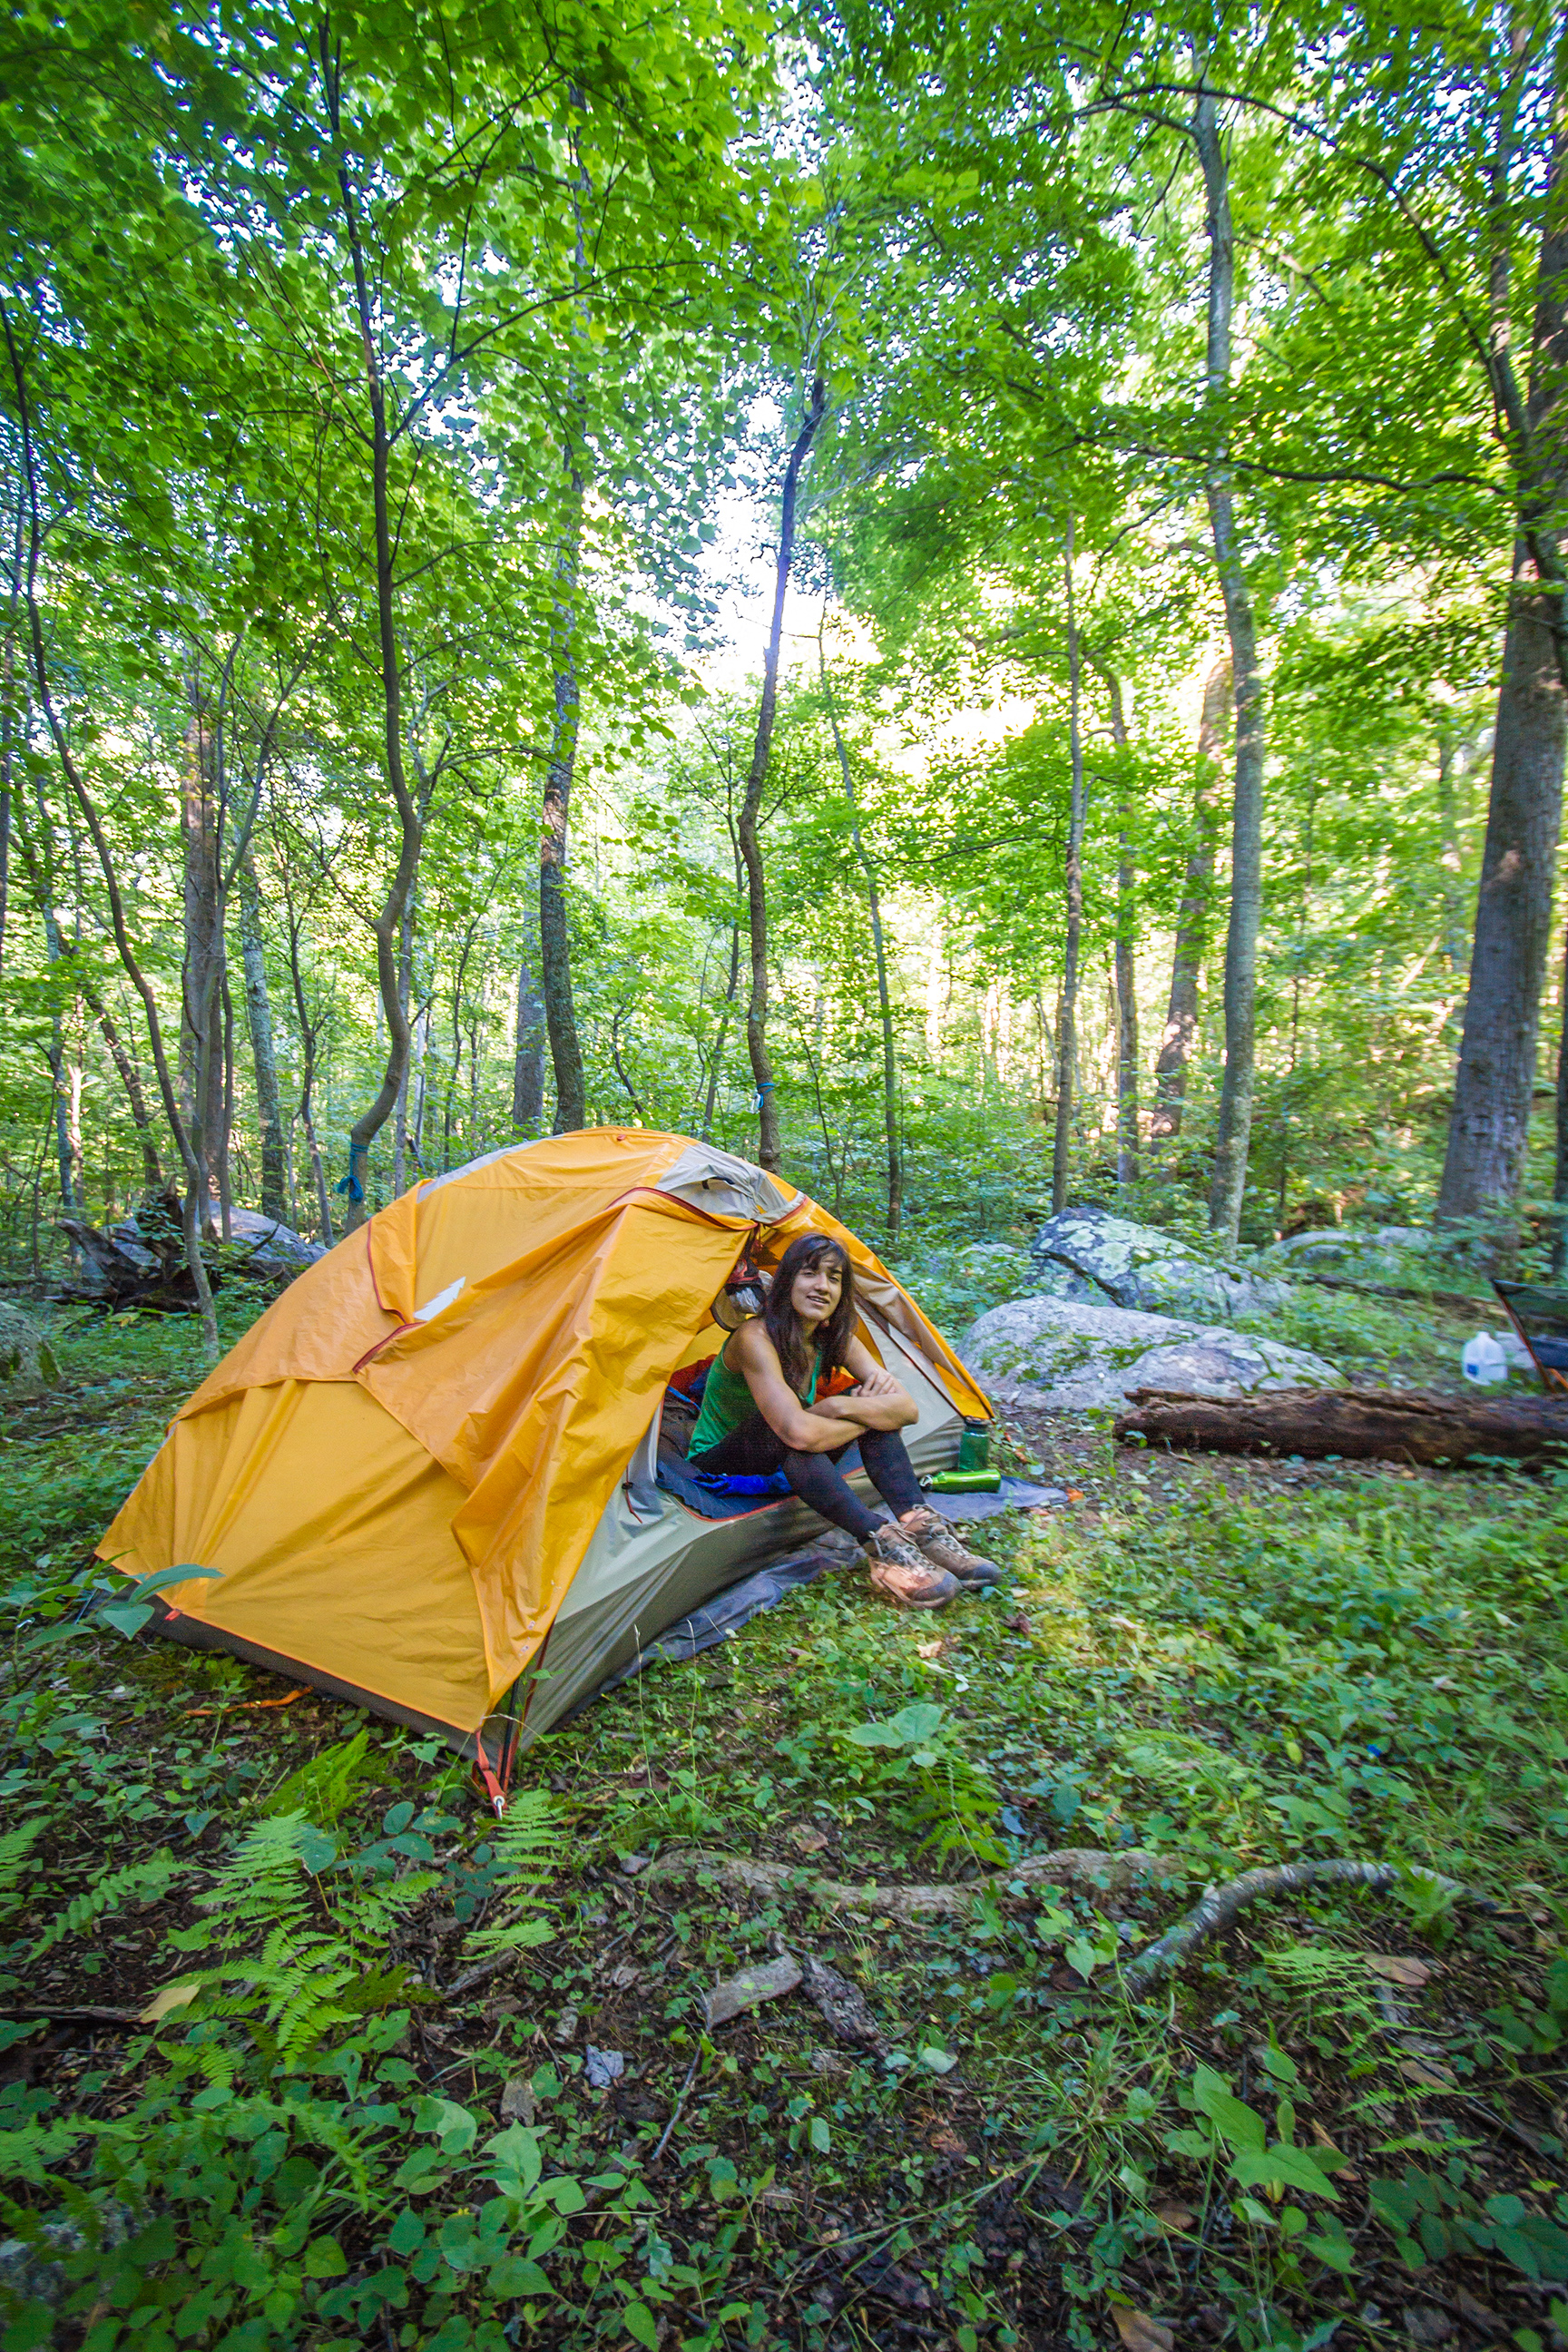 Camping on a flat spot